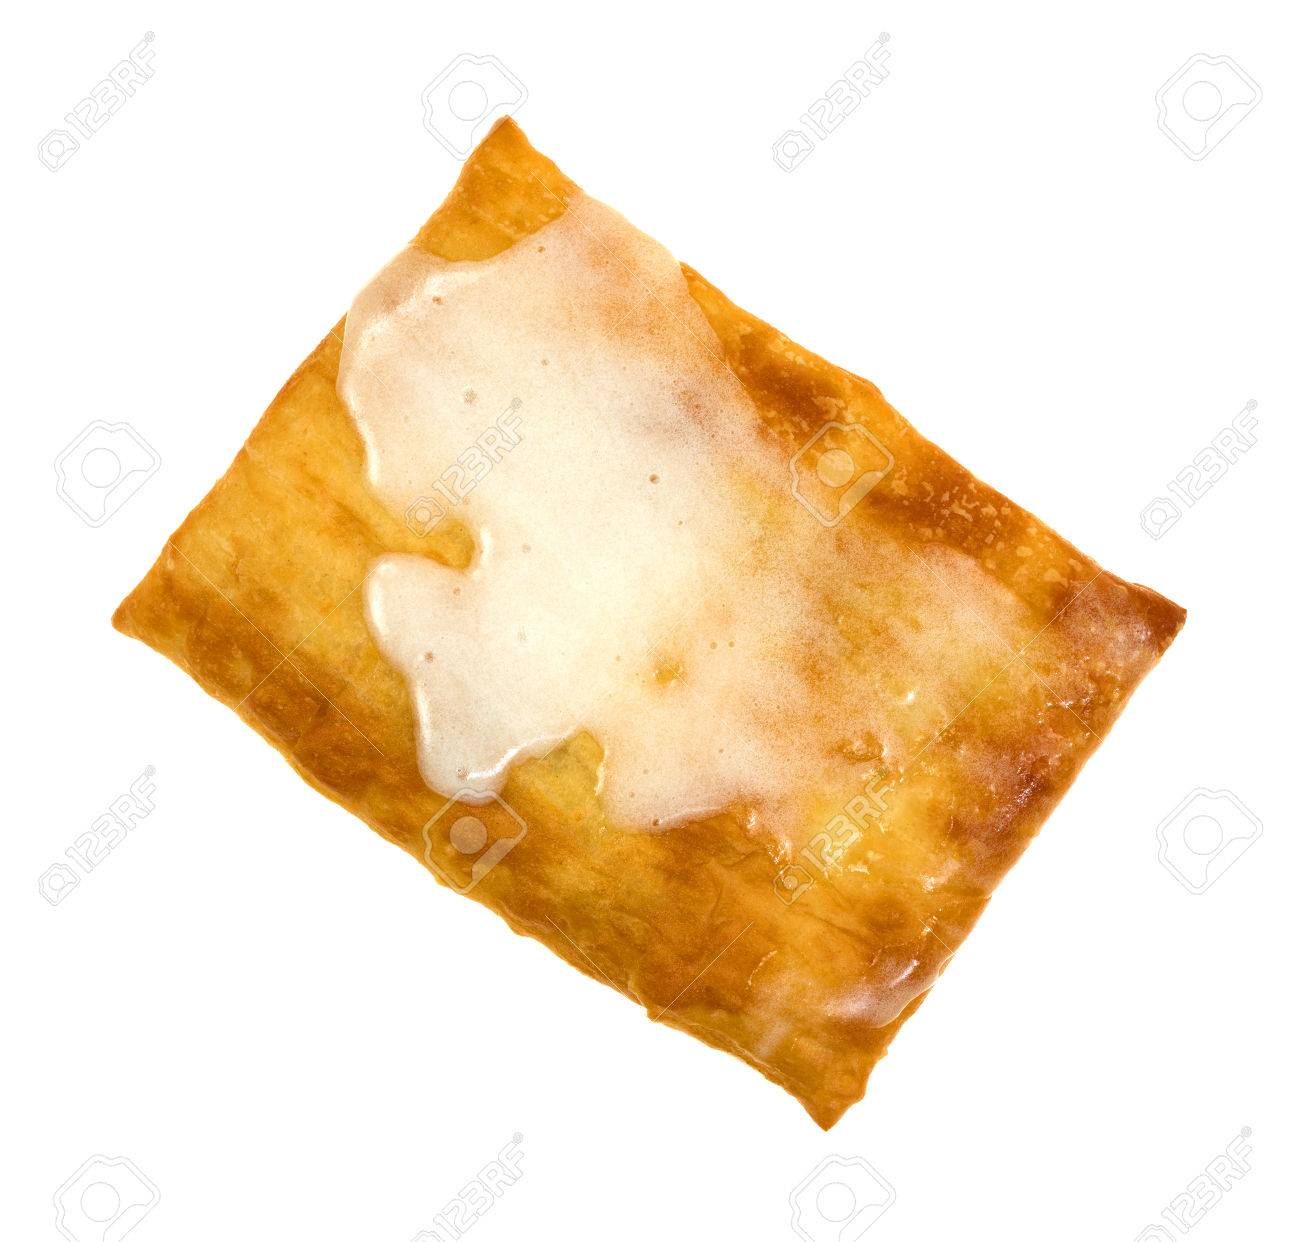 A Hot Toaster Strudel Pastry With Cream Cheese Icing A White